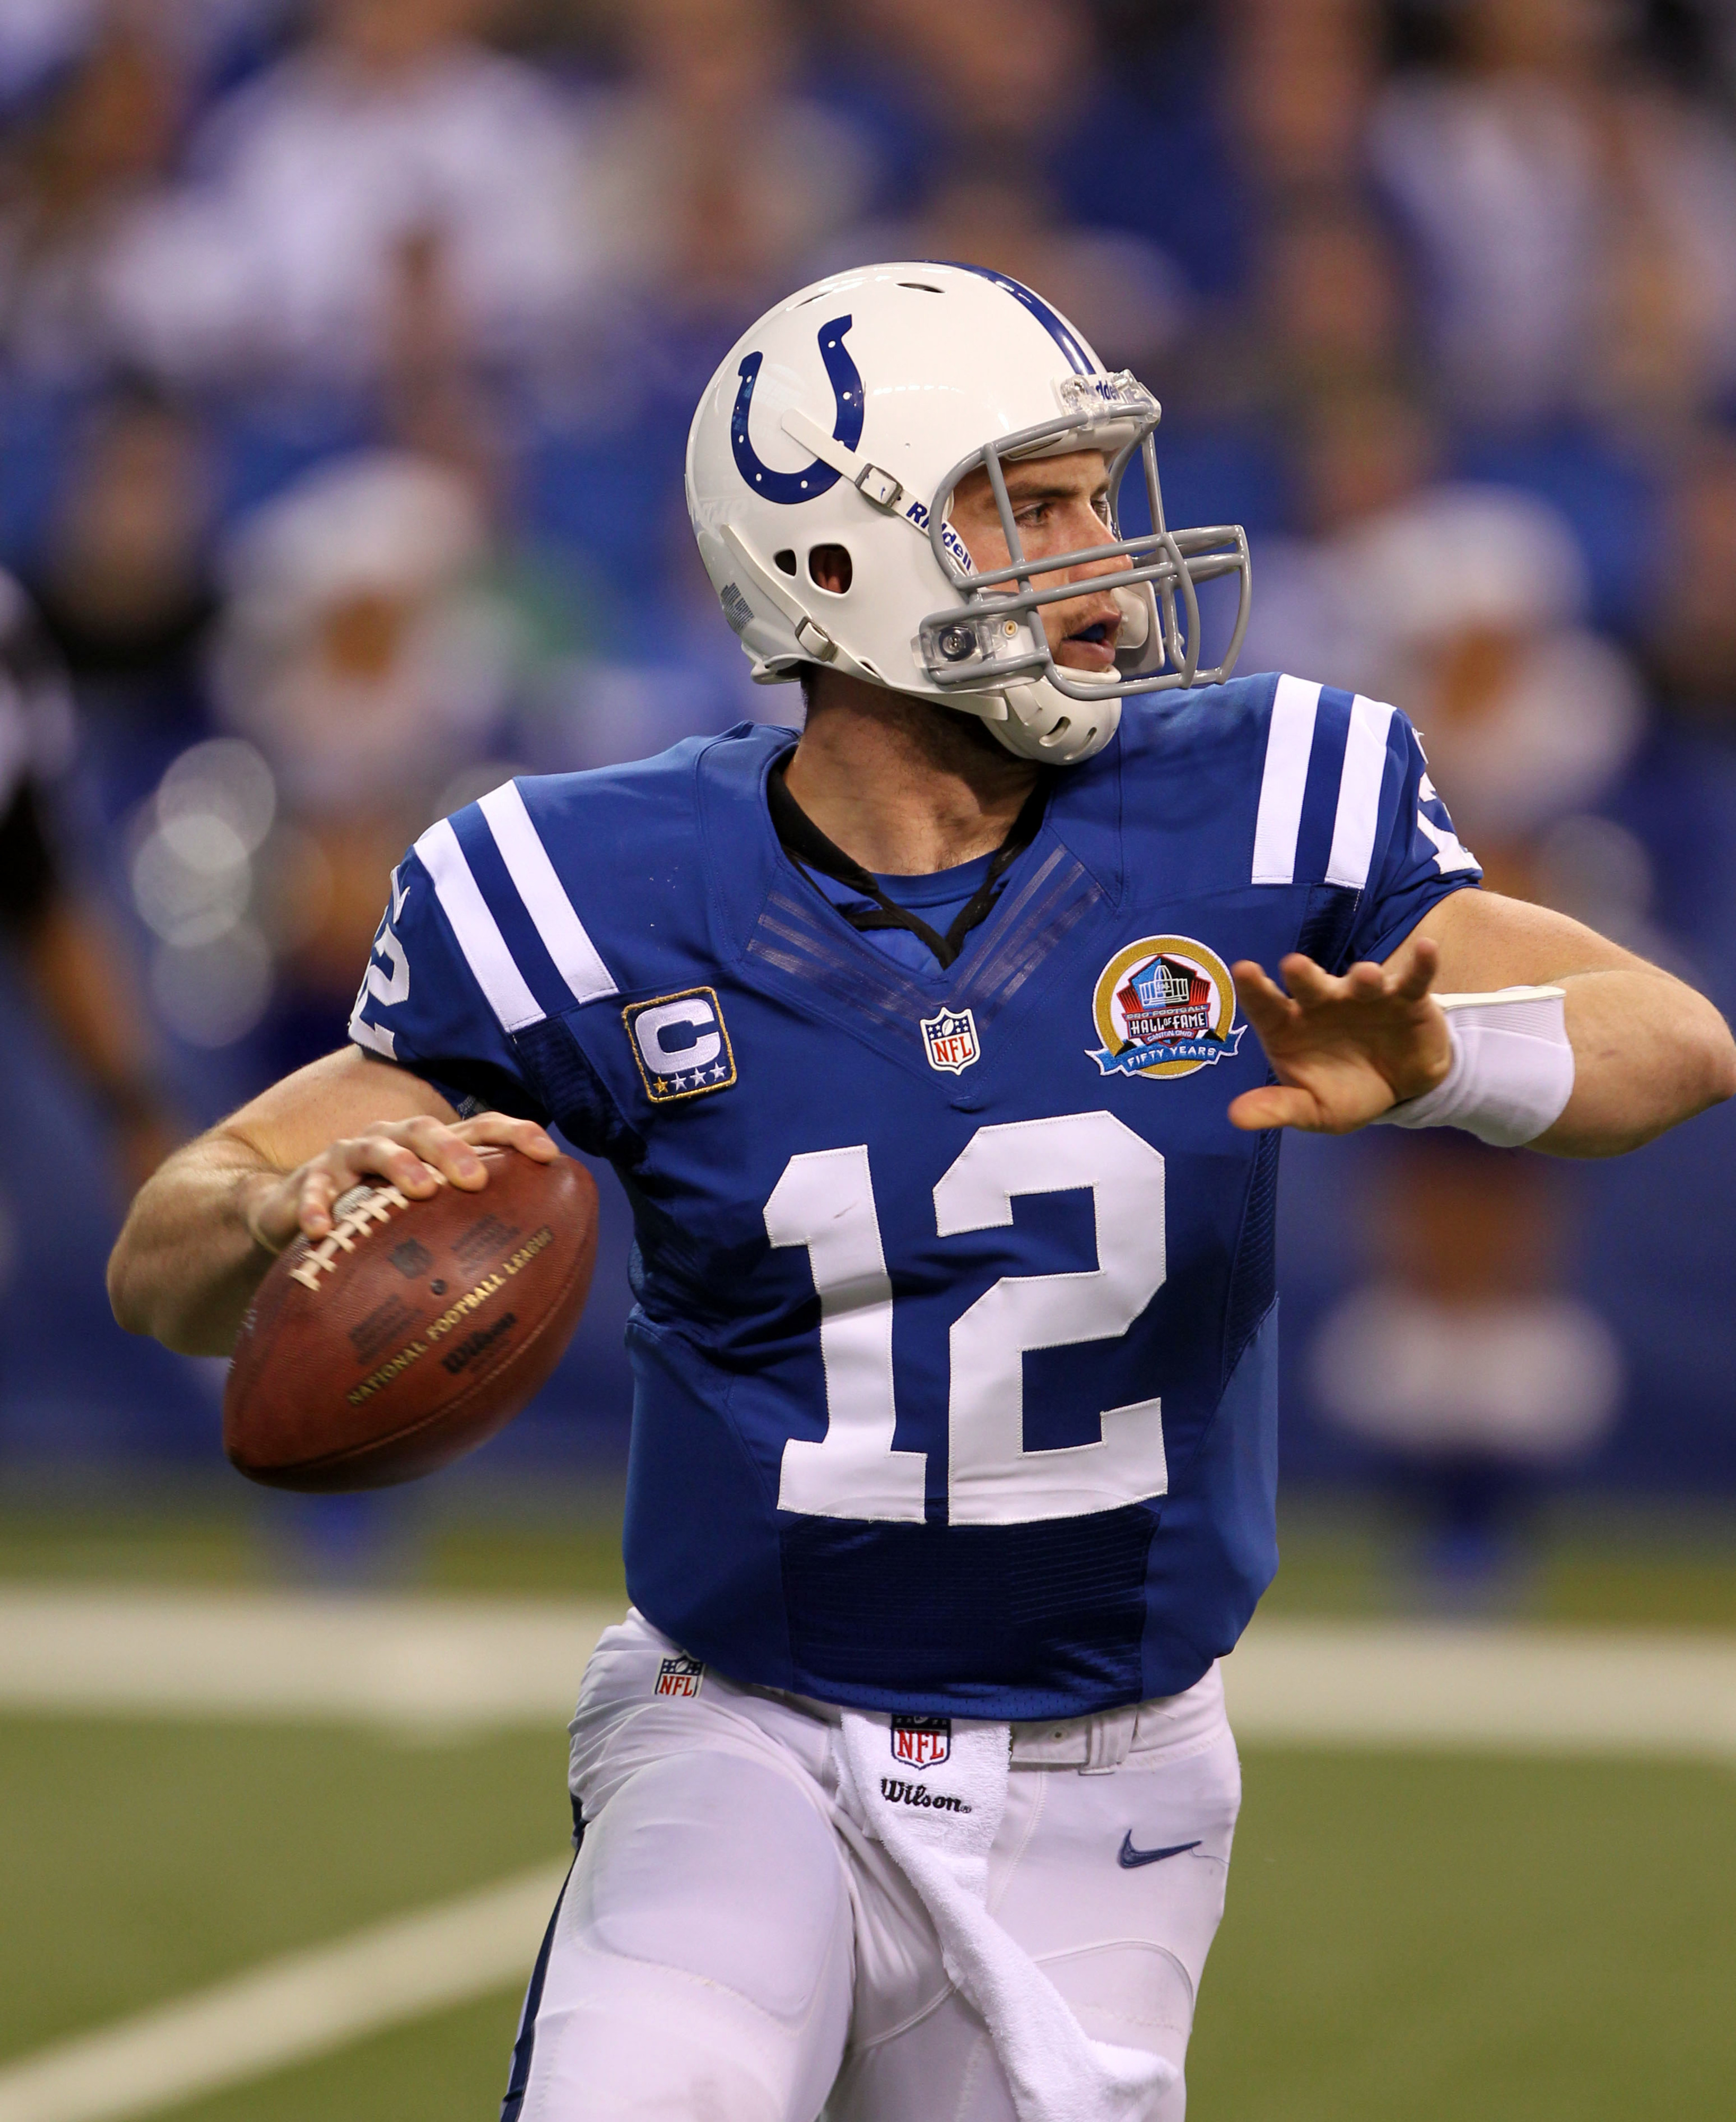 What to expect from Andrew Luck in his 2nd season